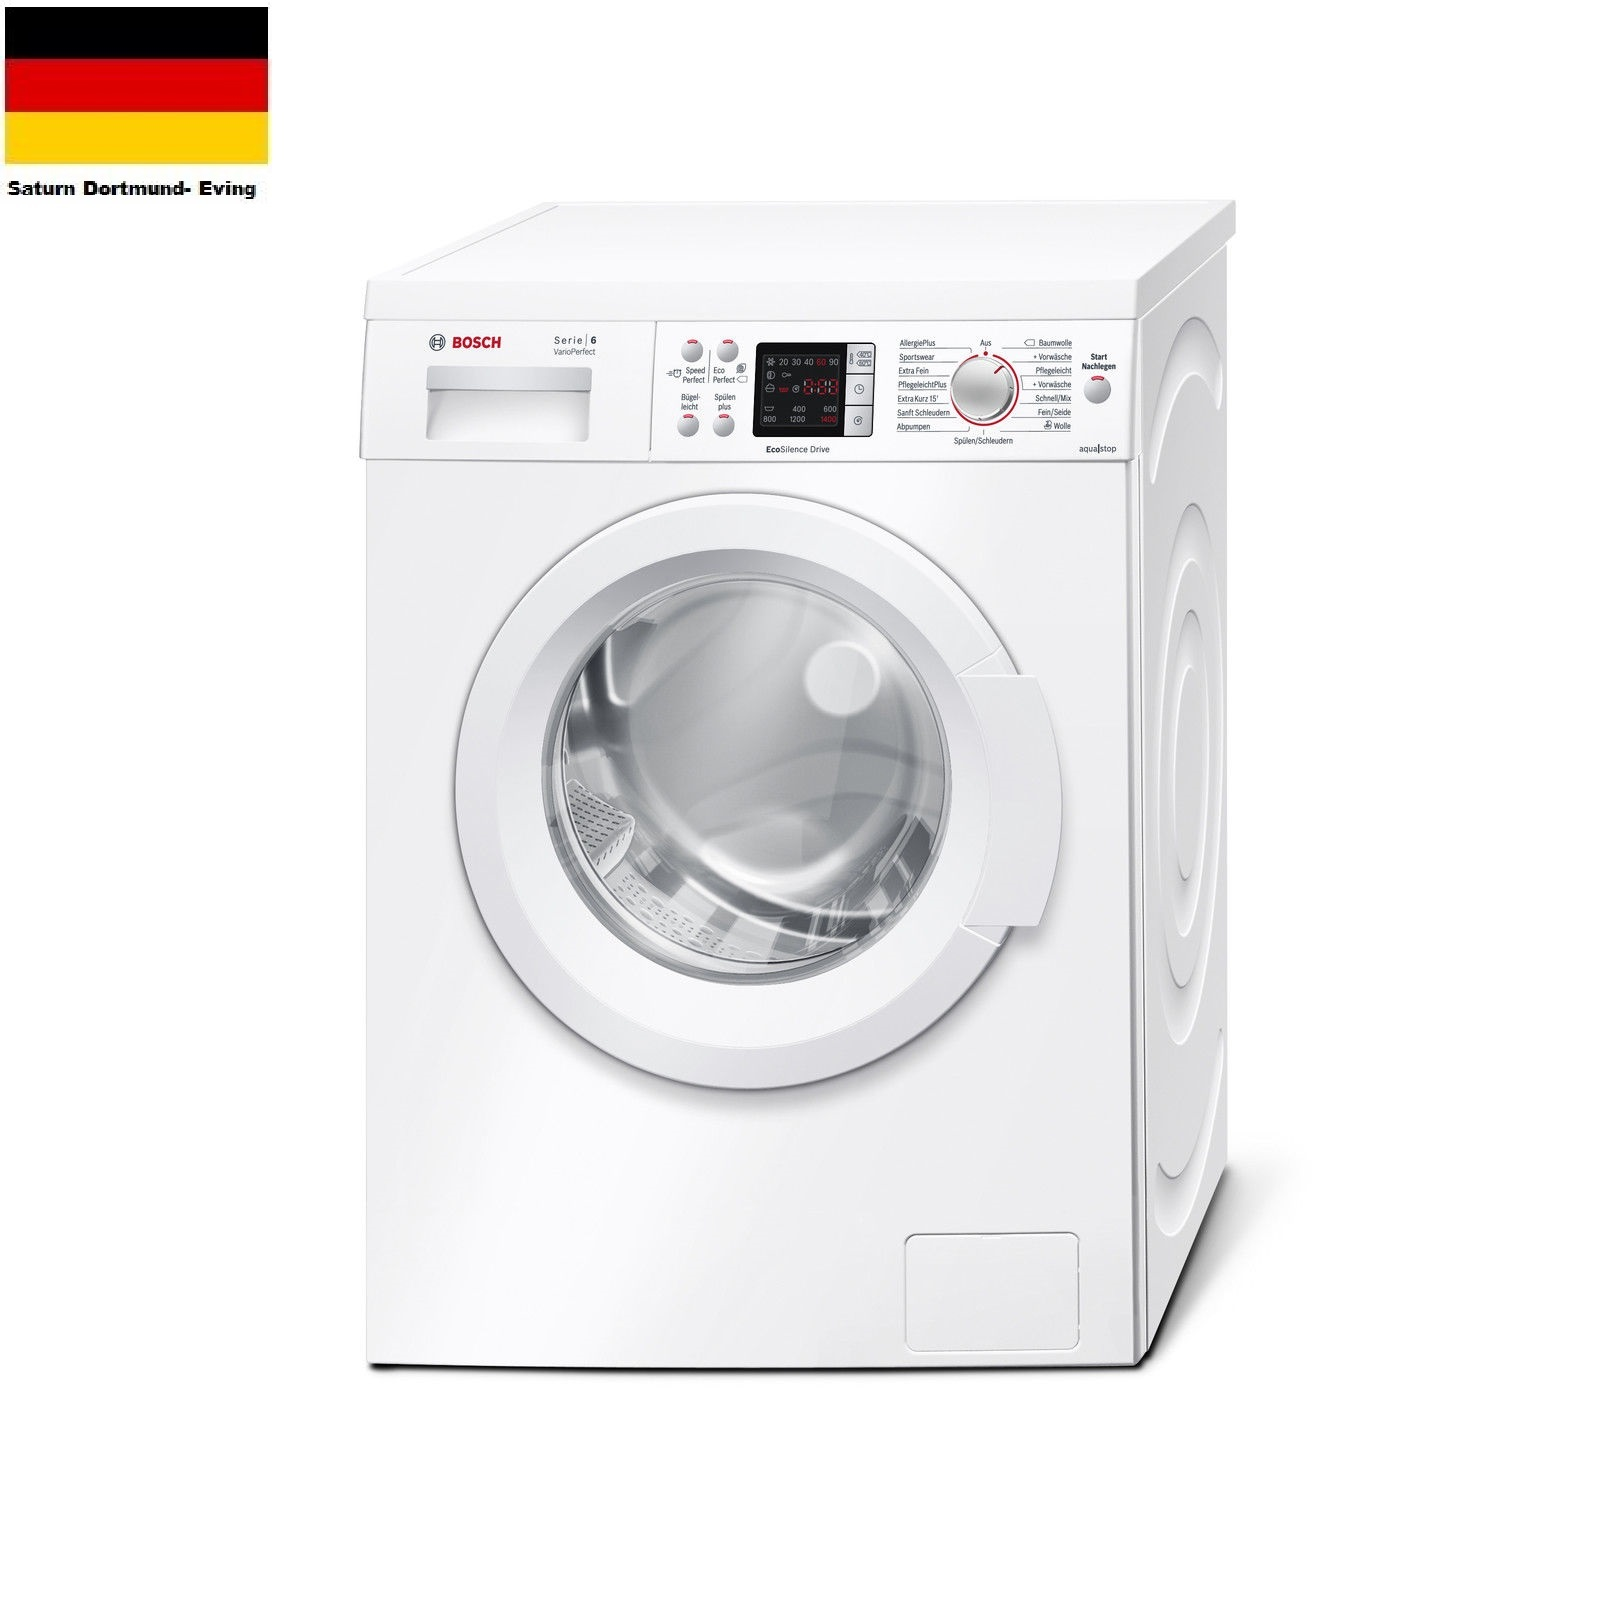 bosch waq2844u serie 6 waschmaschine 7kg 1400 u min a neu ebay. Black Bedroom Furniture Sets. Home Design Ideas